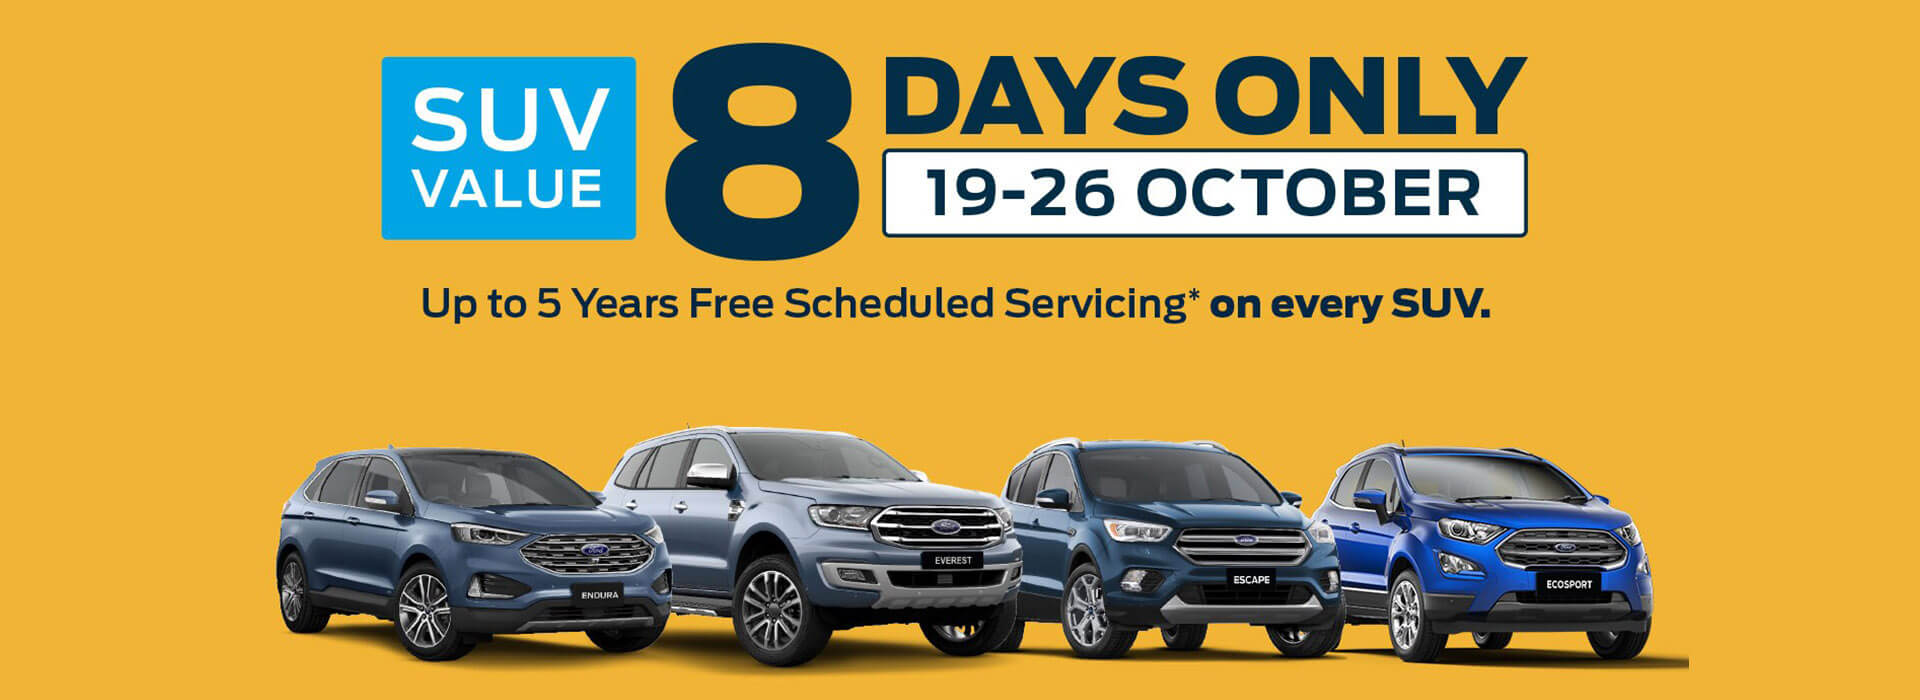 SUV Value 8 Day Sale